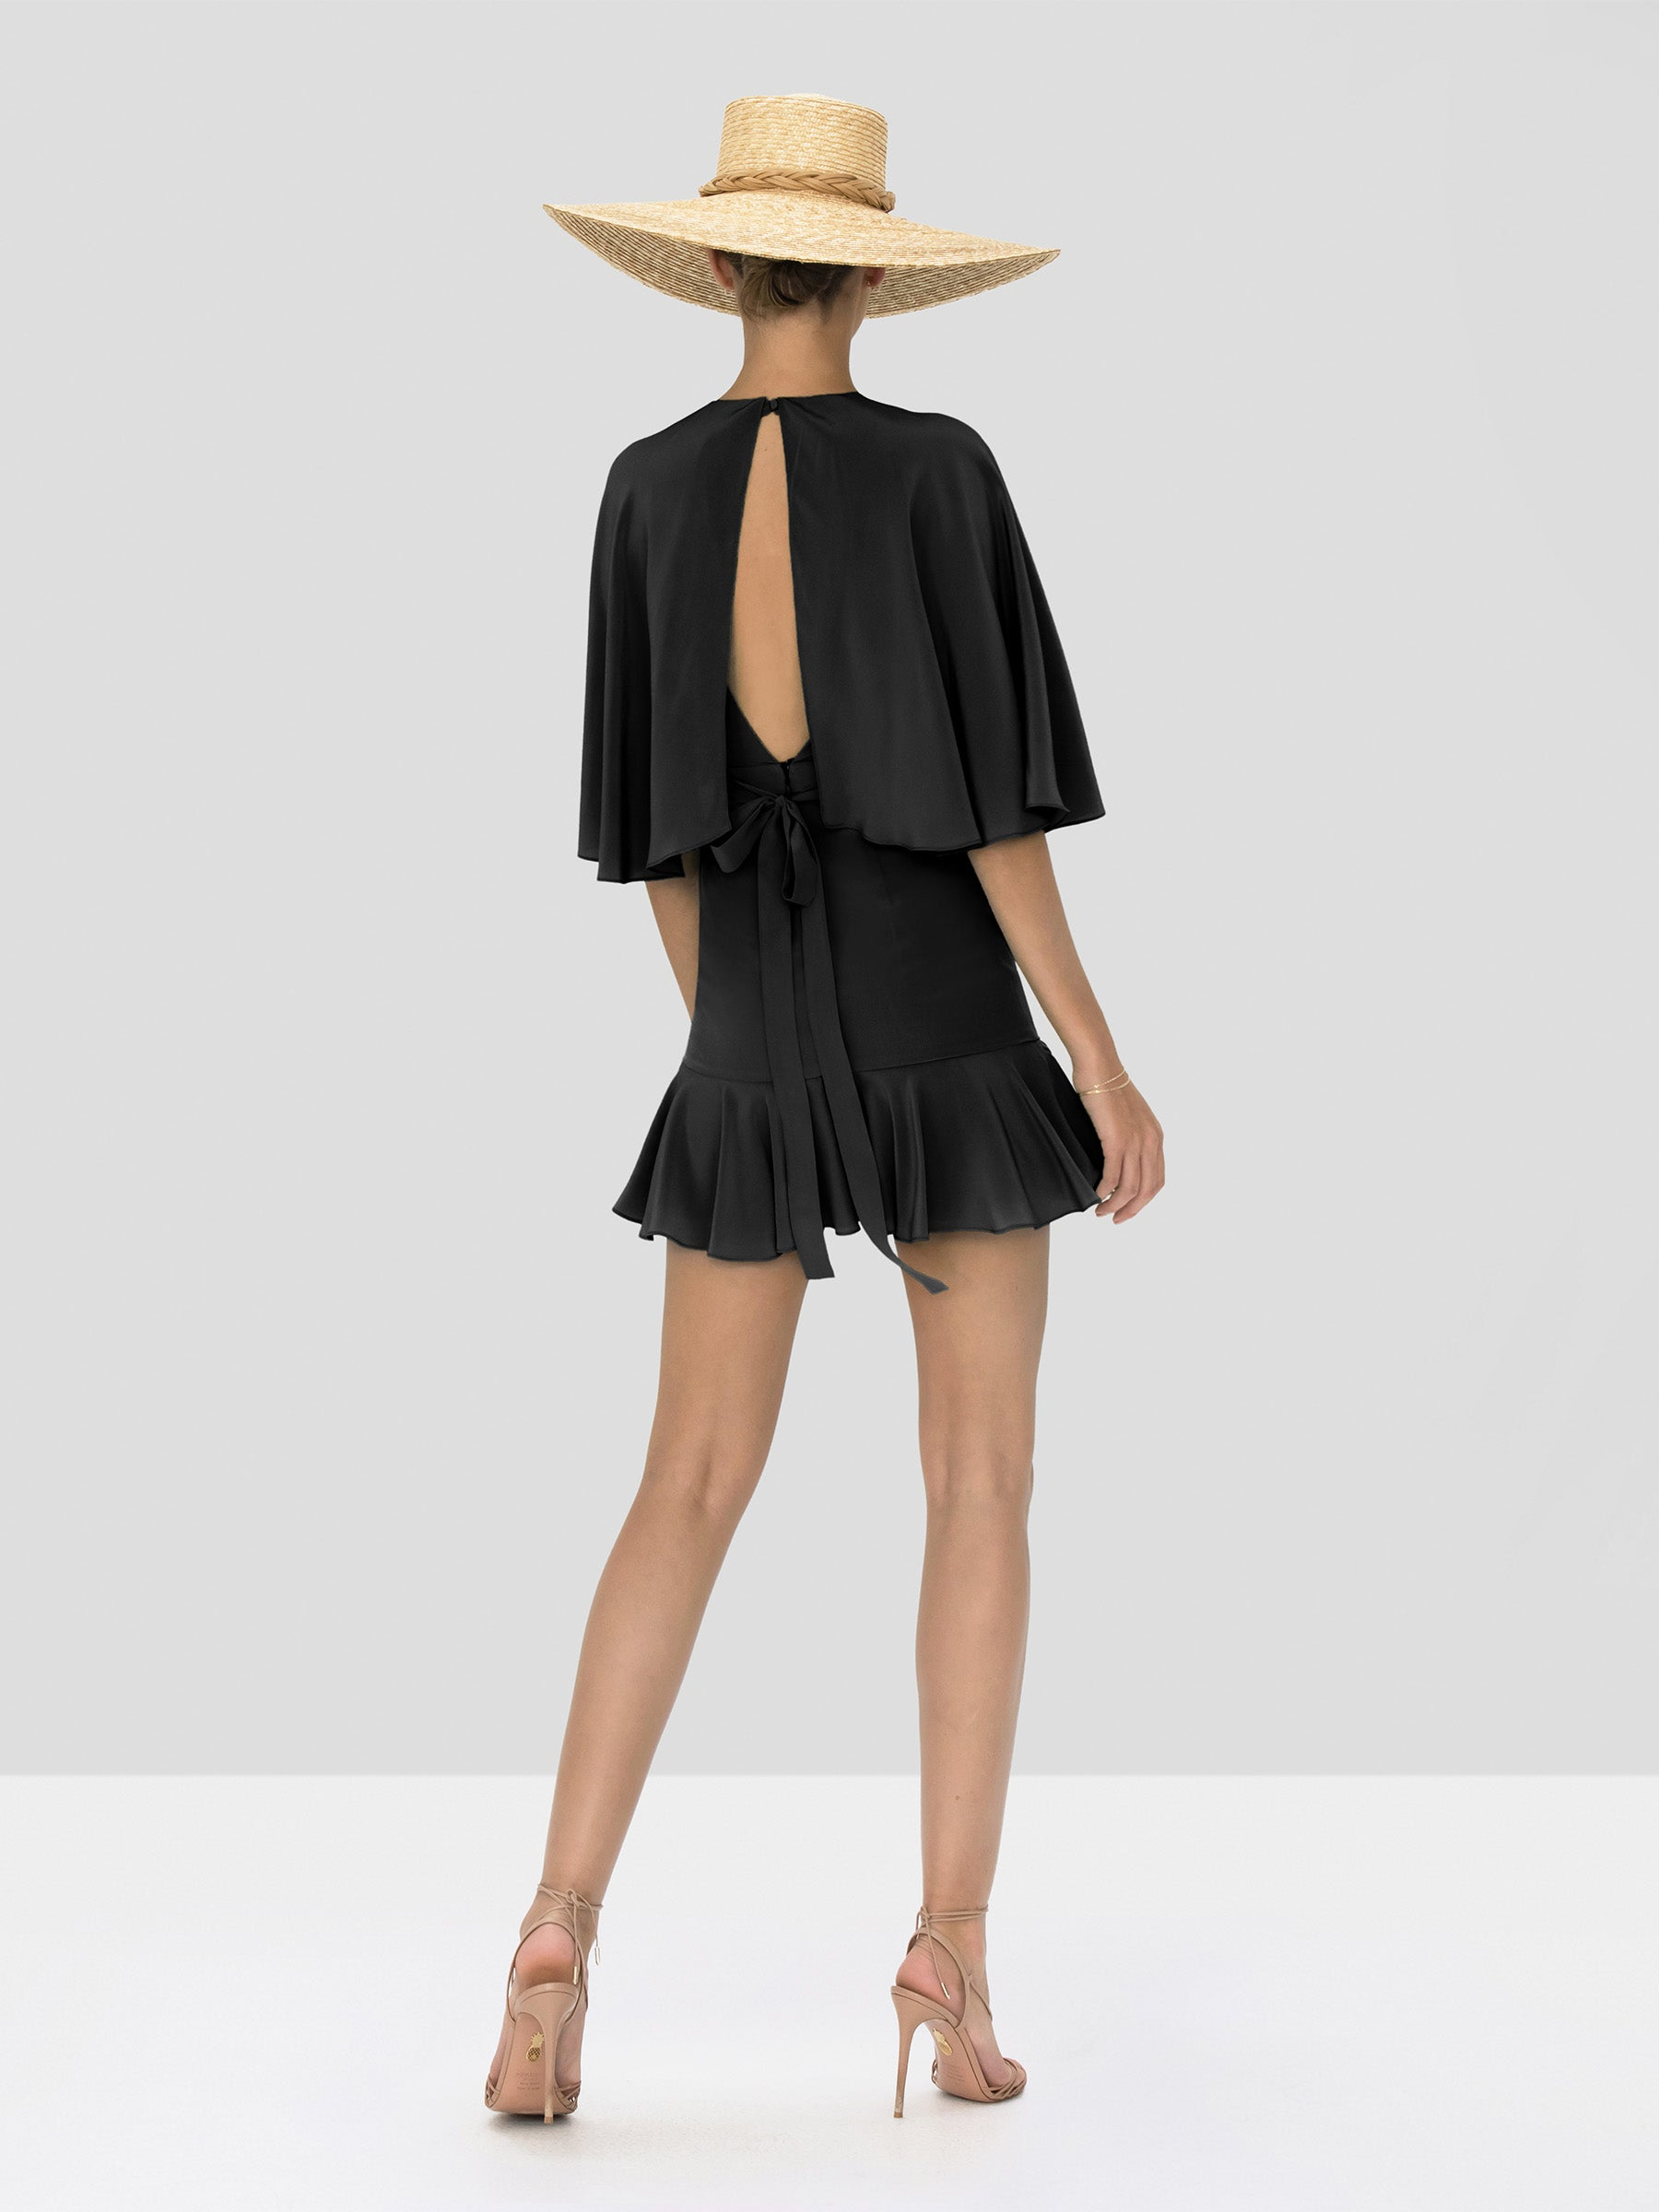 Alexis Tensia Dress in Black from Spring Summer 2020 Collection - Rear View